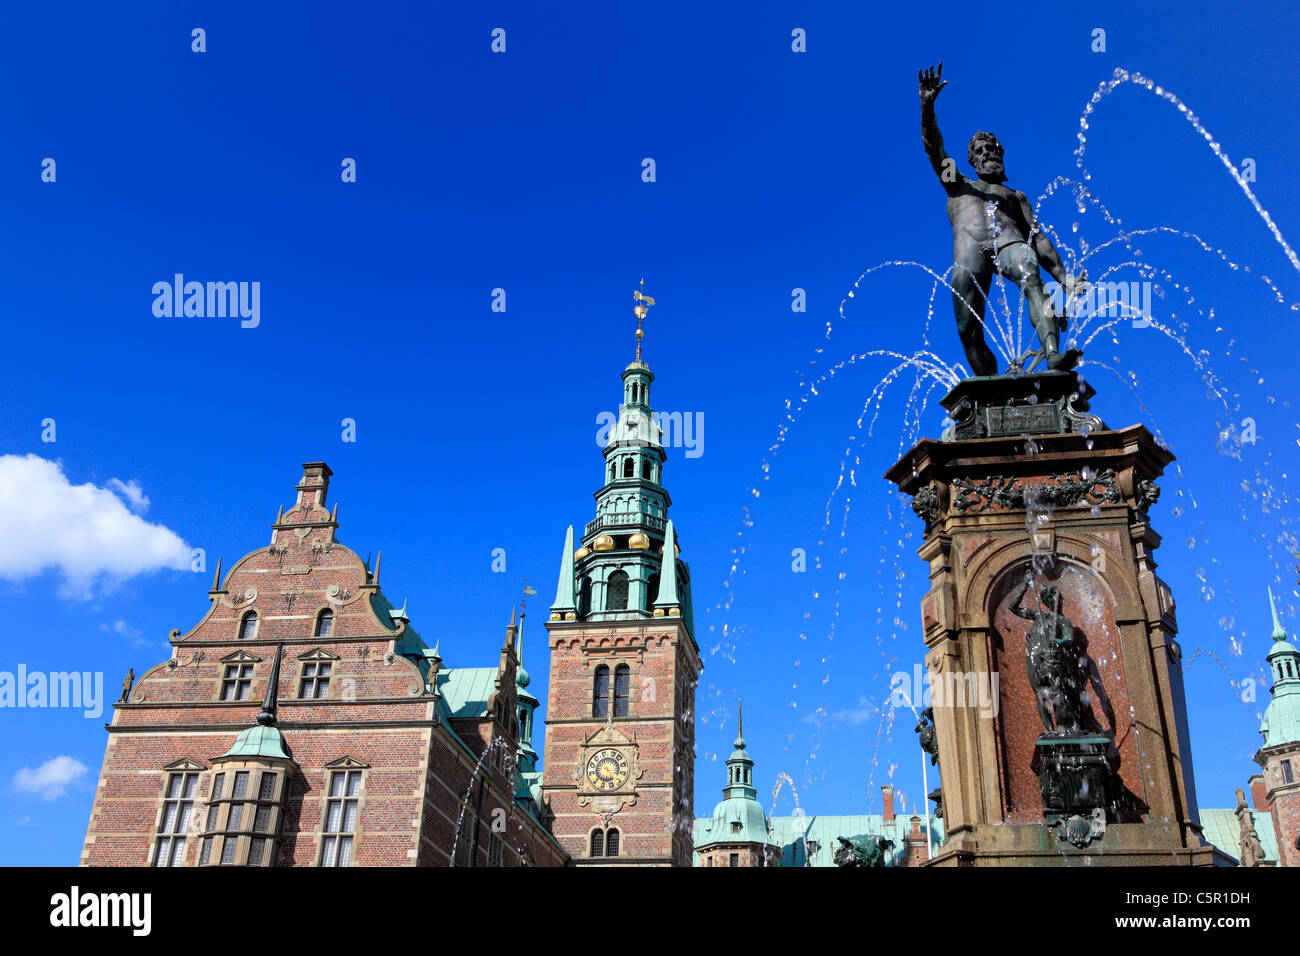 Frederiksborg palace (1602-1620, architects Hans and Lorents van Steenwinckel), Hillerod, near Copenhagen, Denmark - Stock Image